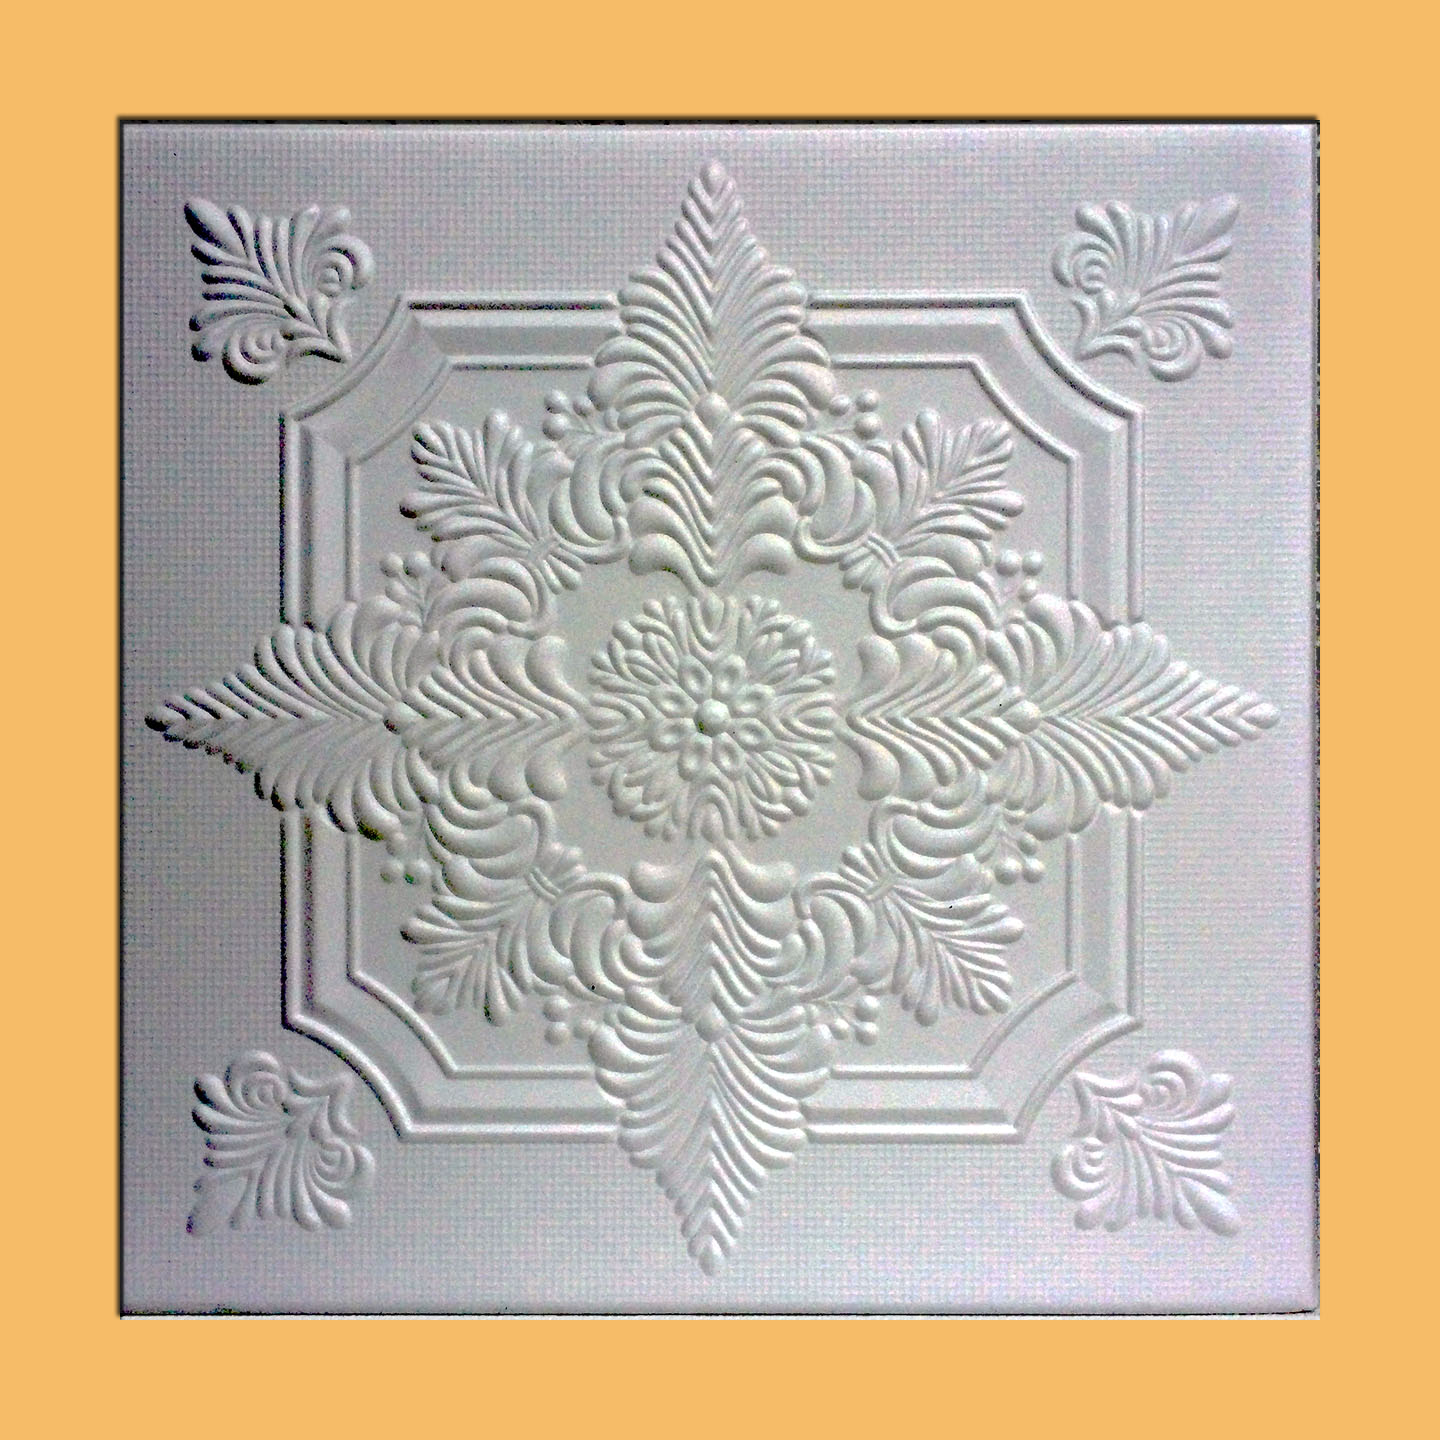 Antique ceilings decorative ceiling tiles for residential and margaretta ceiling tiles marseille ceiling tiles monacoceiling tiles novara ceiling tiles dailygadgetfo Choice Image